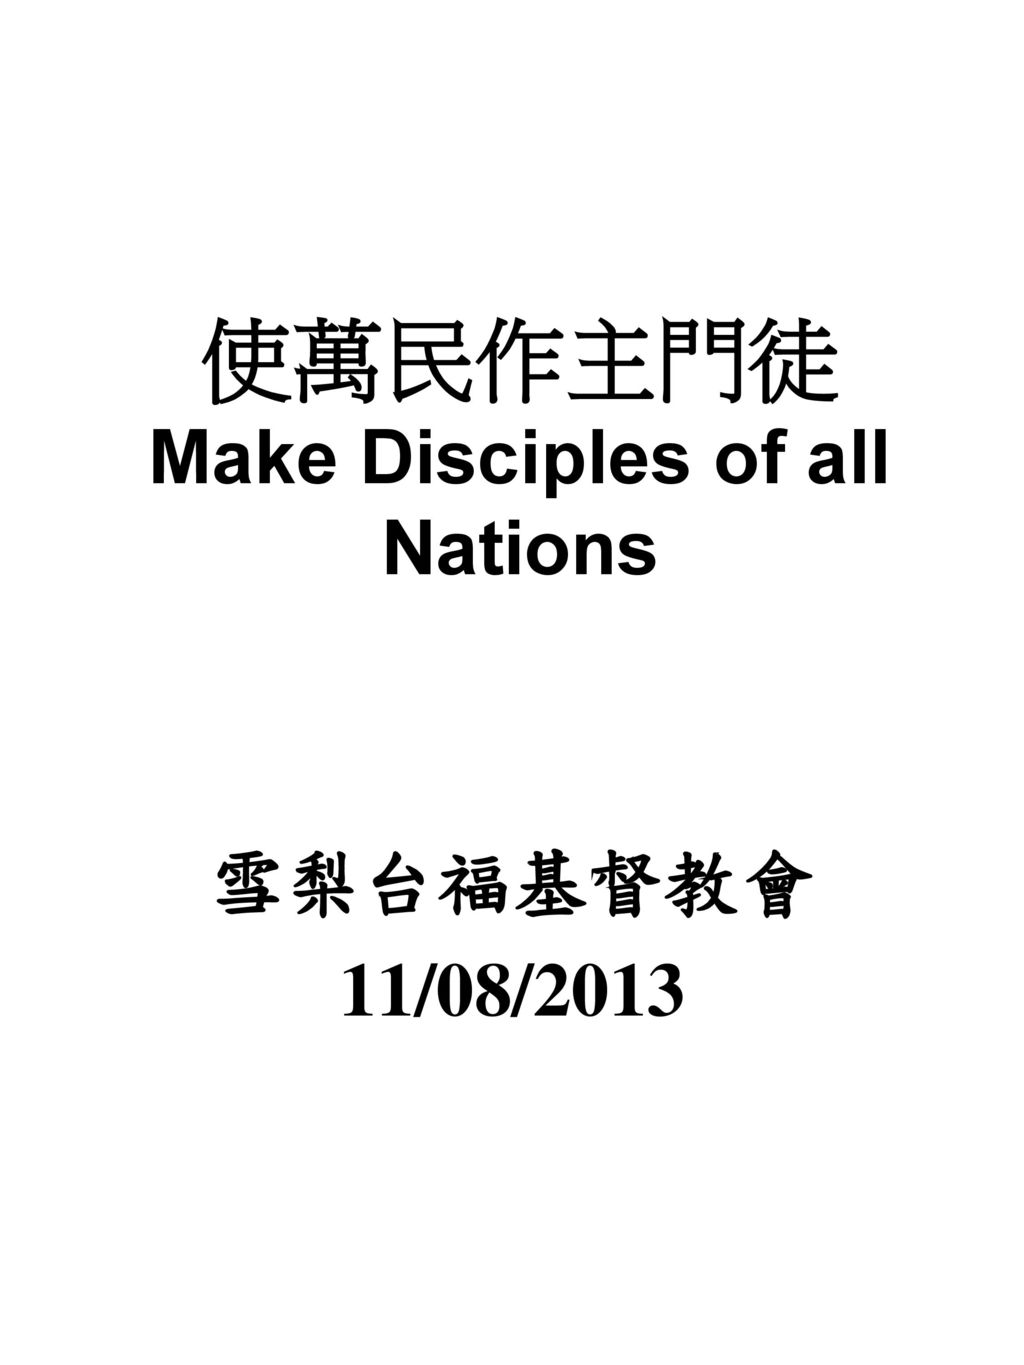 使萬民作主門徒 Make Disciples of all Nations